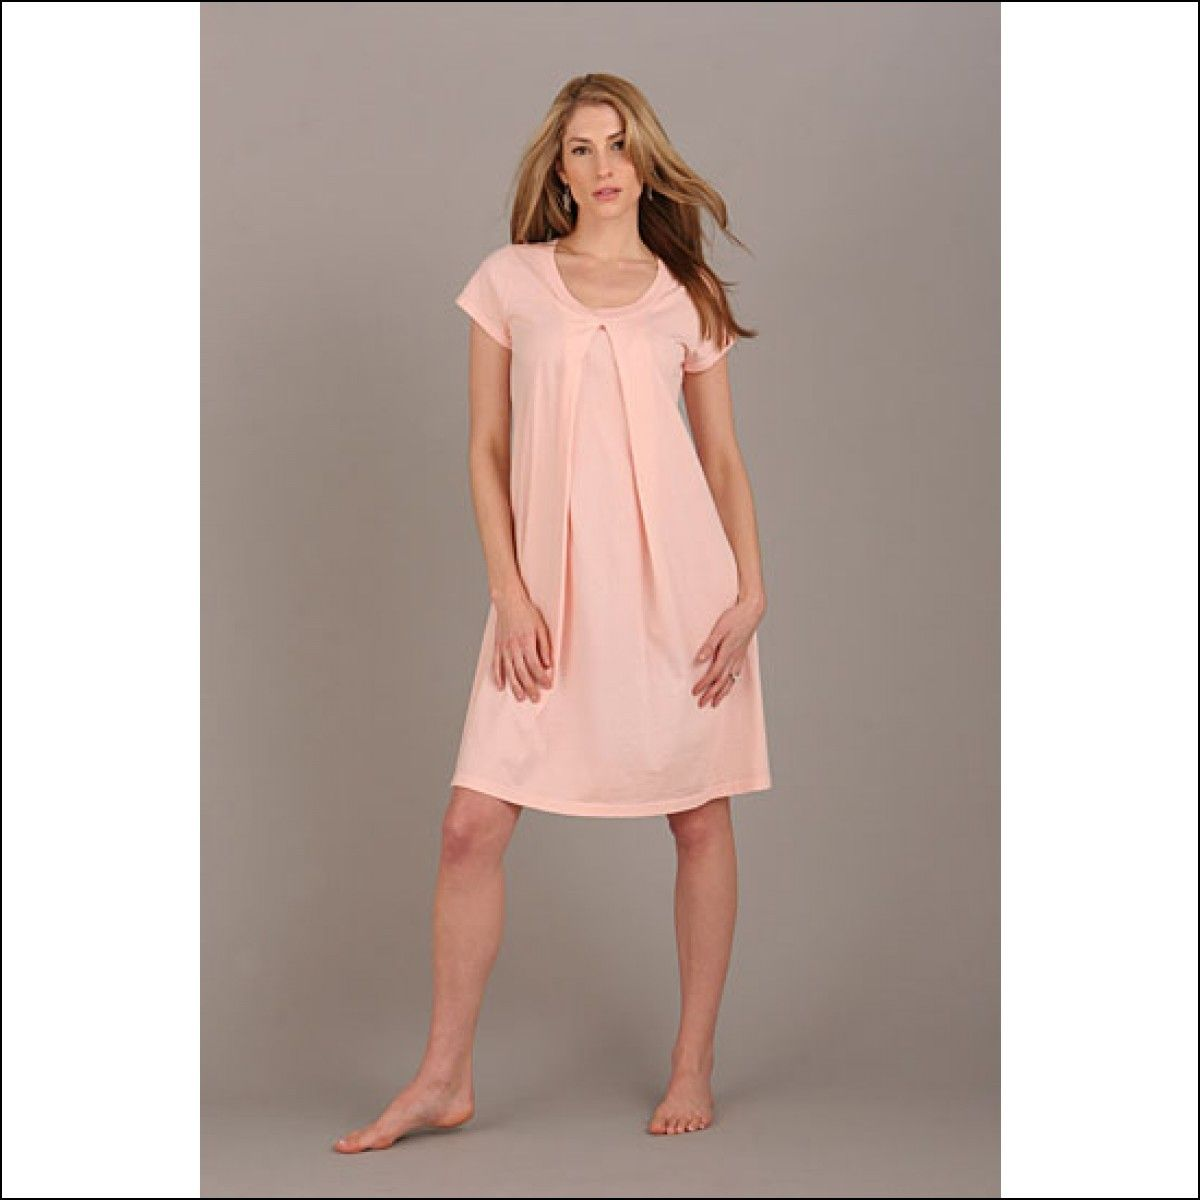 Nursing Gowns for Hospital | Dresses and Gowns Ideas | Pinterest ...